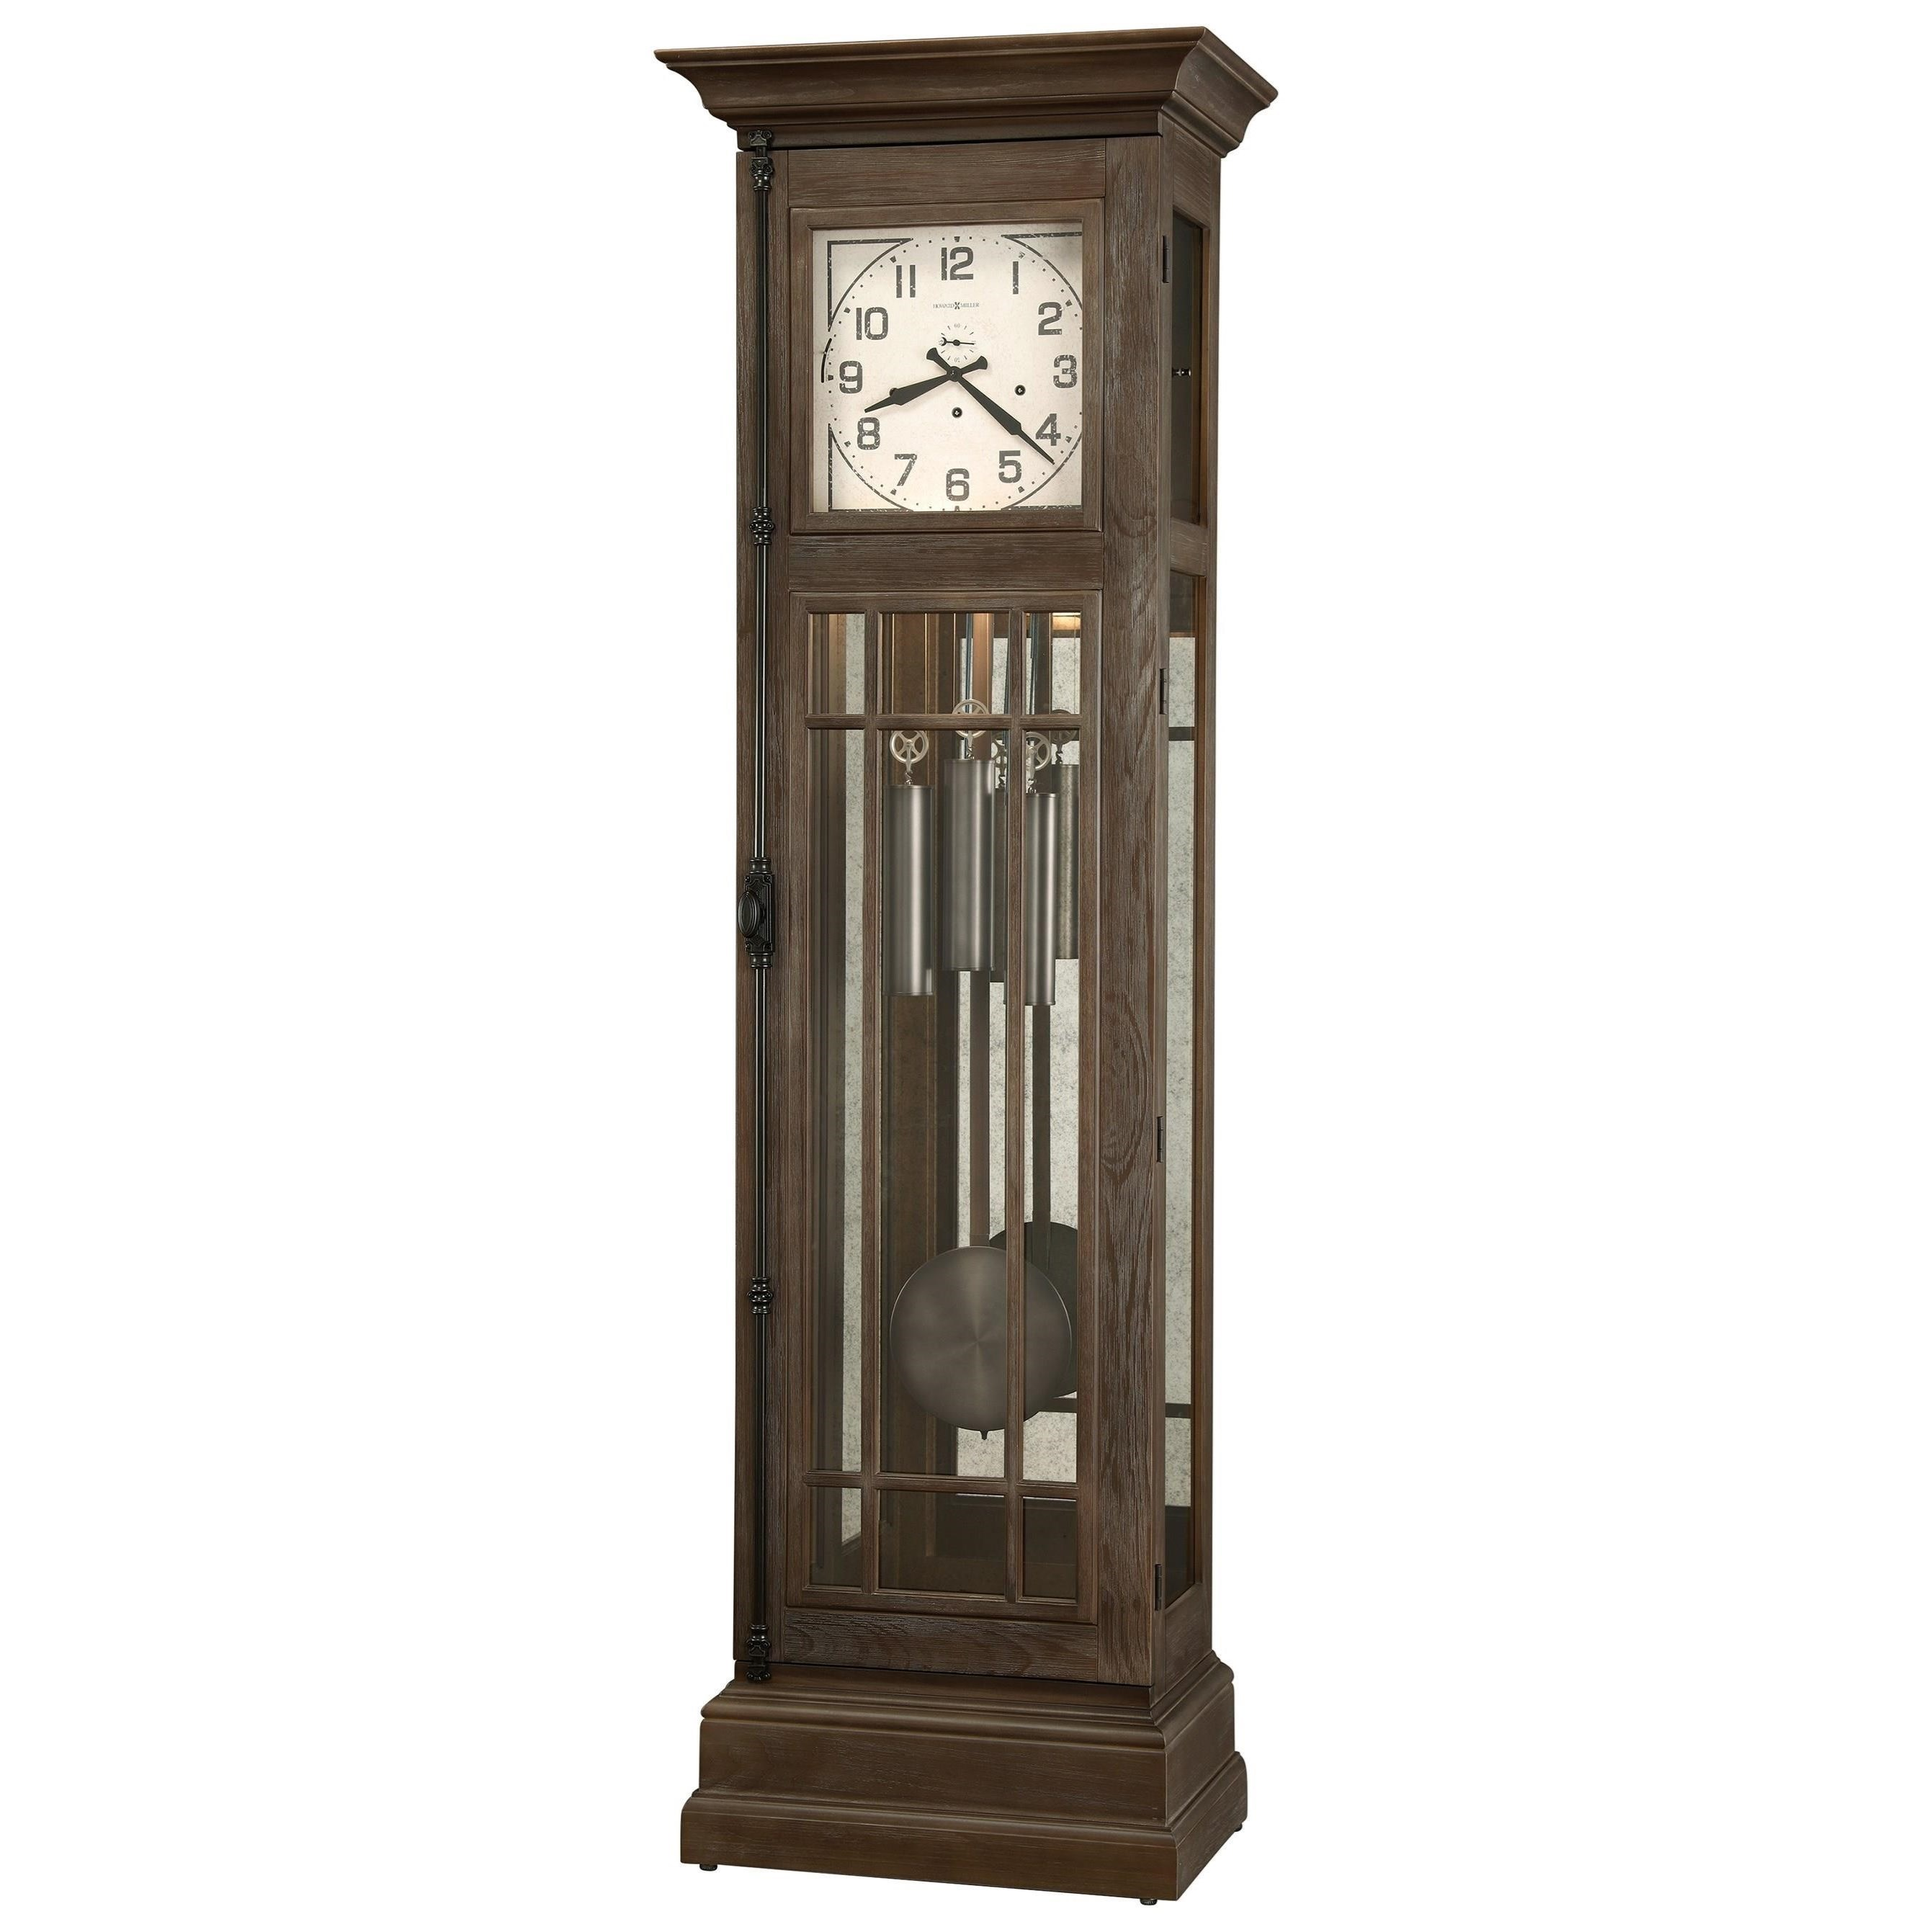 floor good m clock to i addition any home delightful grandfather floors is a